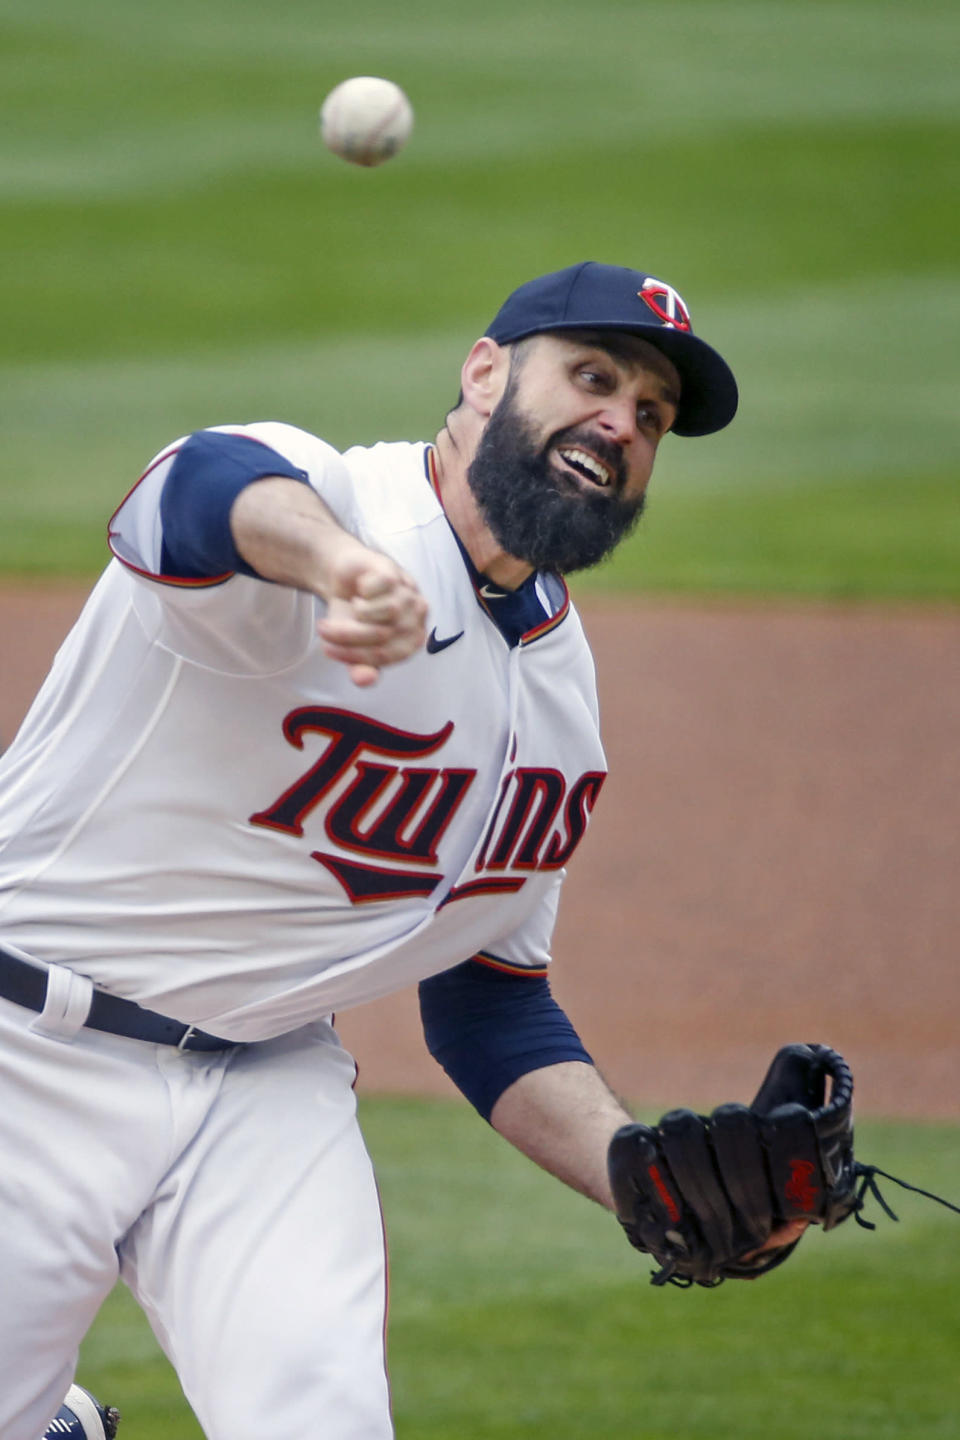 Minnesota Twins pitcher Matt Shoemaker throws to the Seattle Mariners in the first inning of a baseball game Sunday, April 11, 2021, in Minneapolis. (AP Photo/Bruce Kluckhohn)